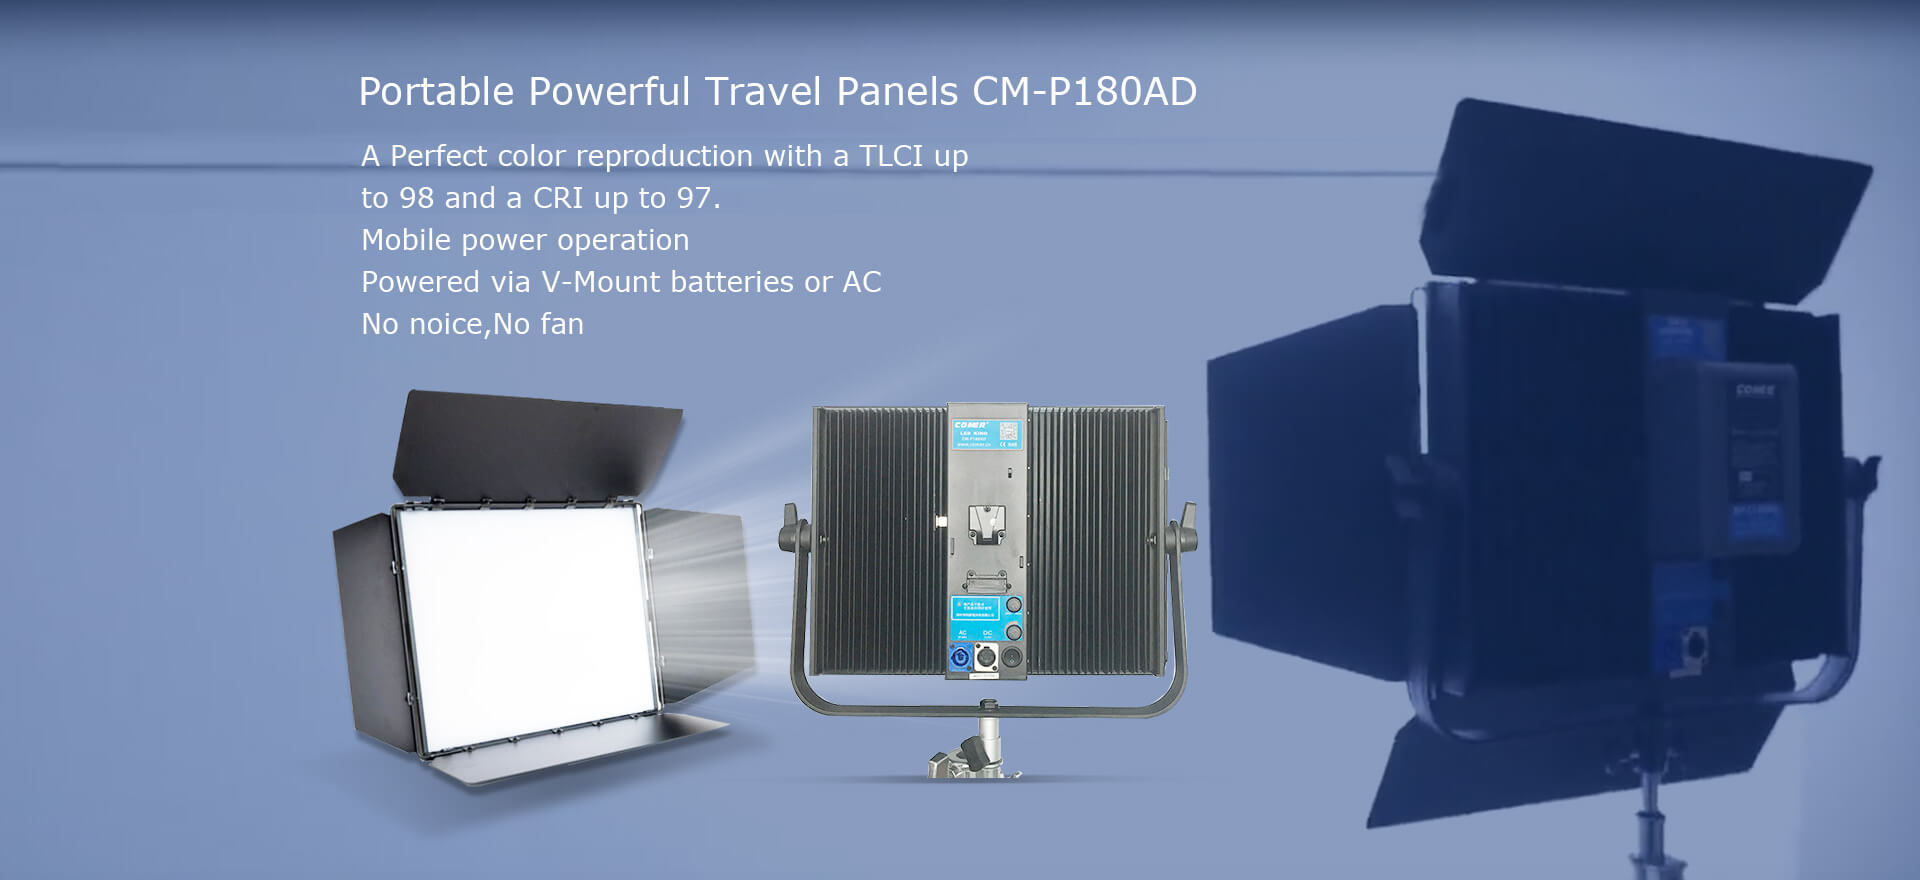 Portable powerful travel Panels CM-P180AD